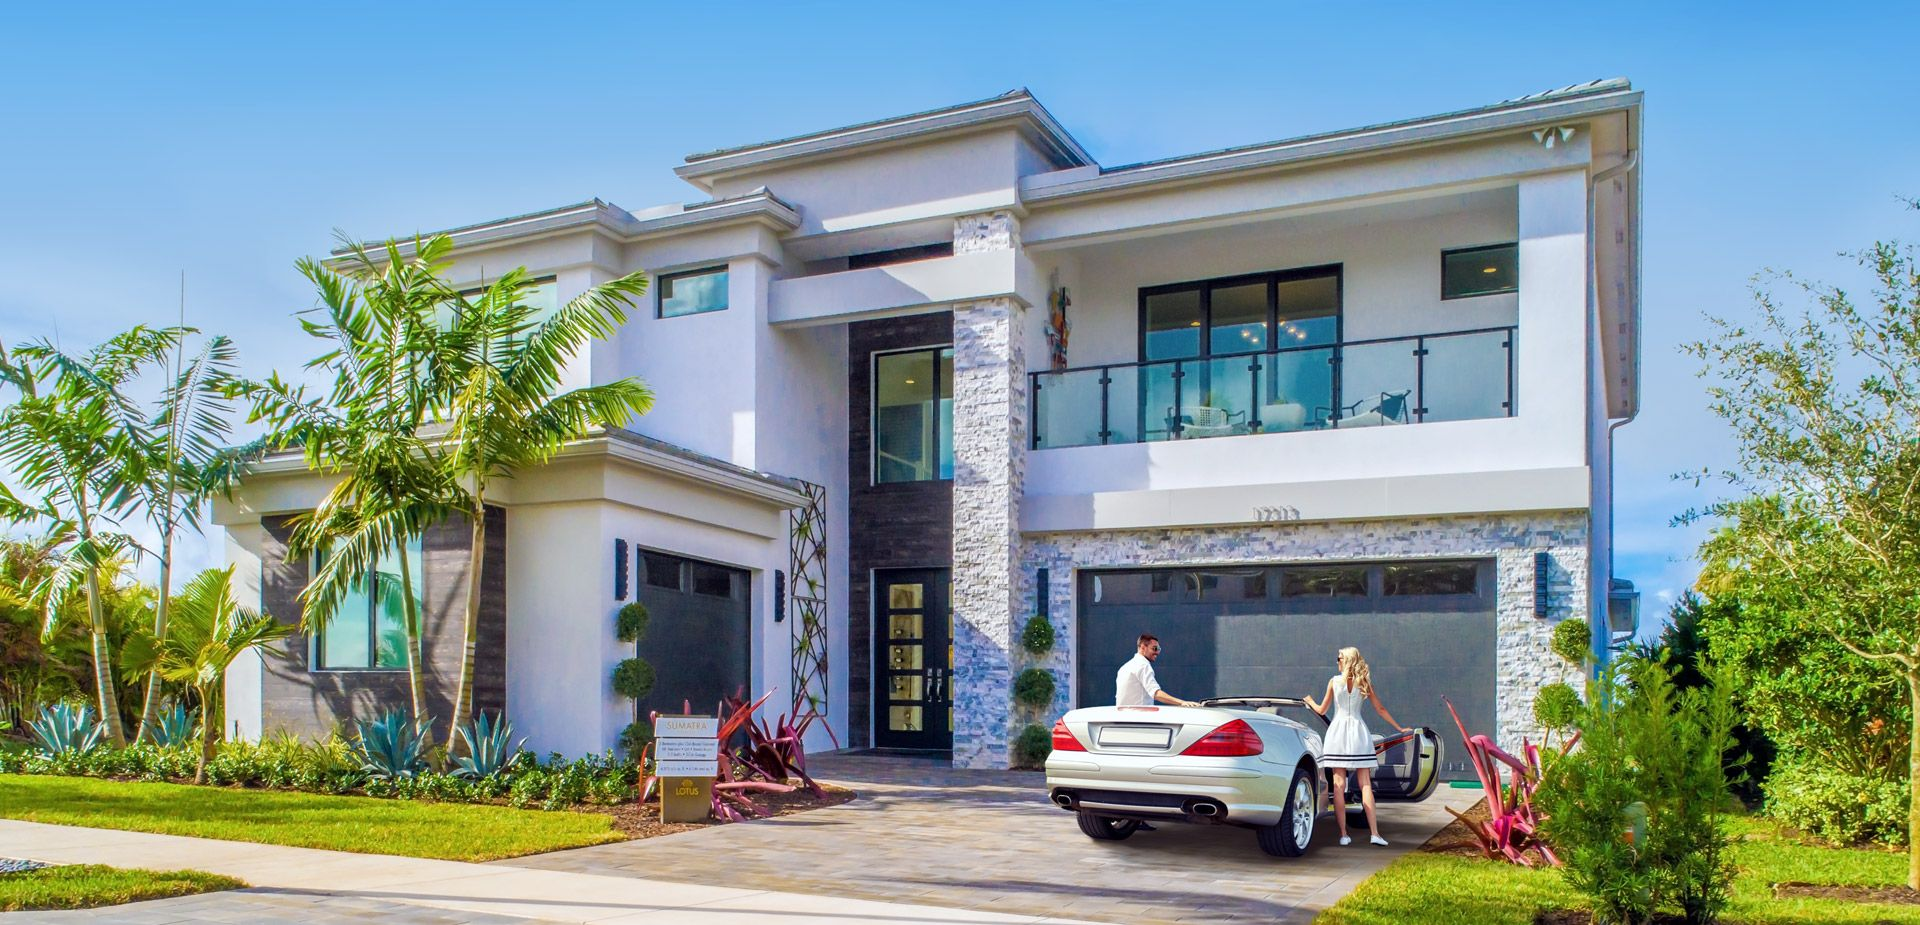 'Lotus' by G.L. Homes in Palm Beach County